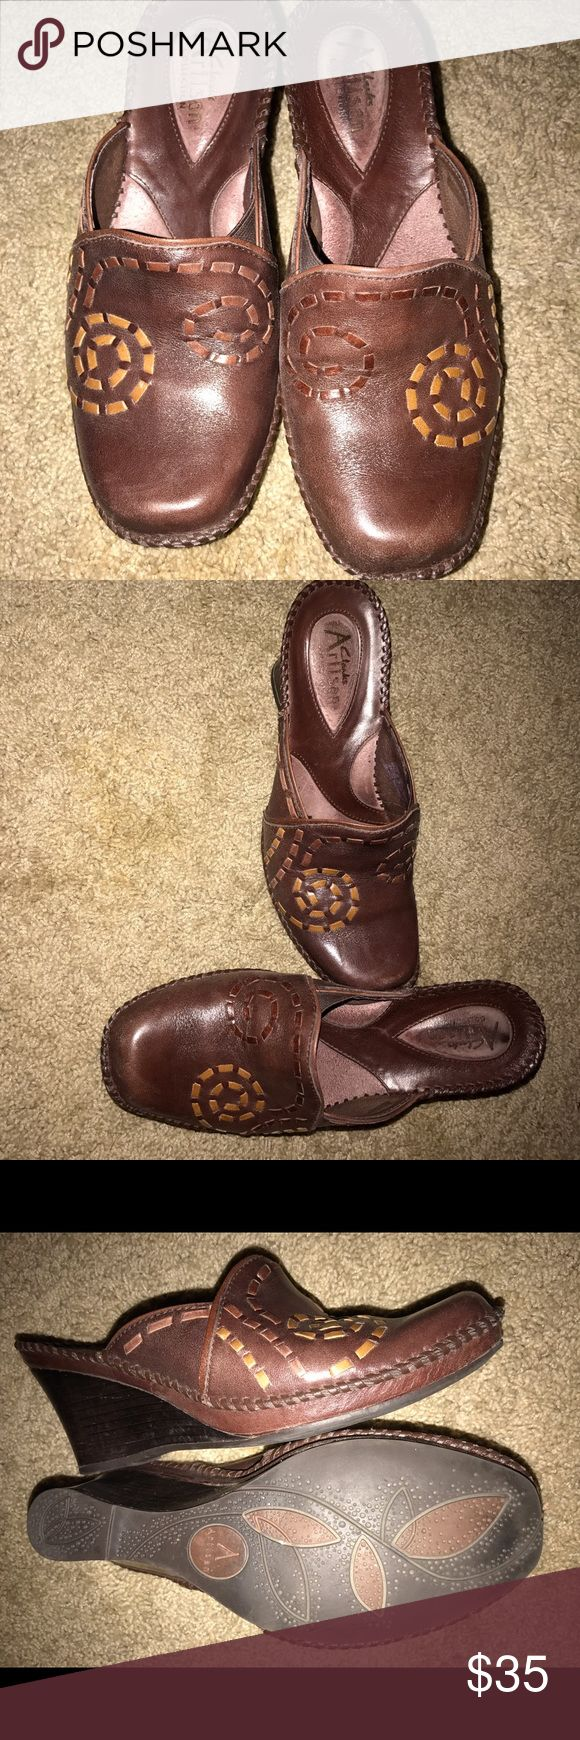 Women's mules slip on artisan Clarks heels Worn once. Minimal wear on heels. Tiny scratches on toes. Clarks Shoes Mules & Clogs